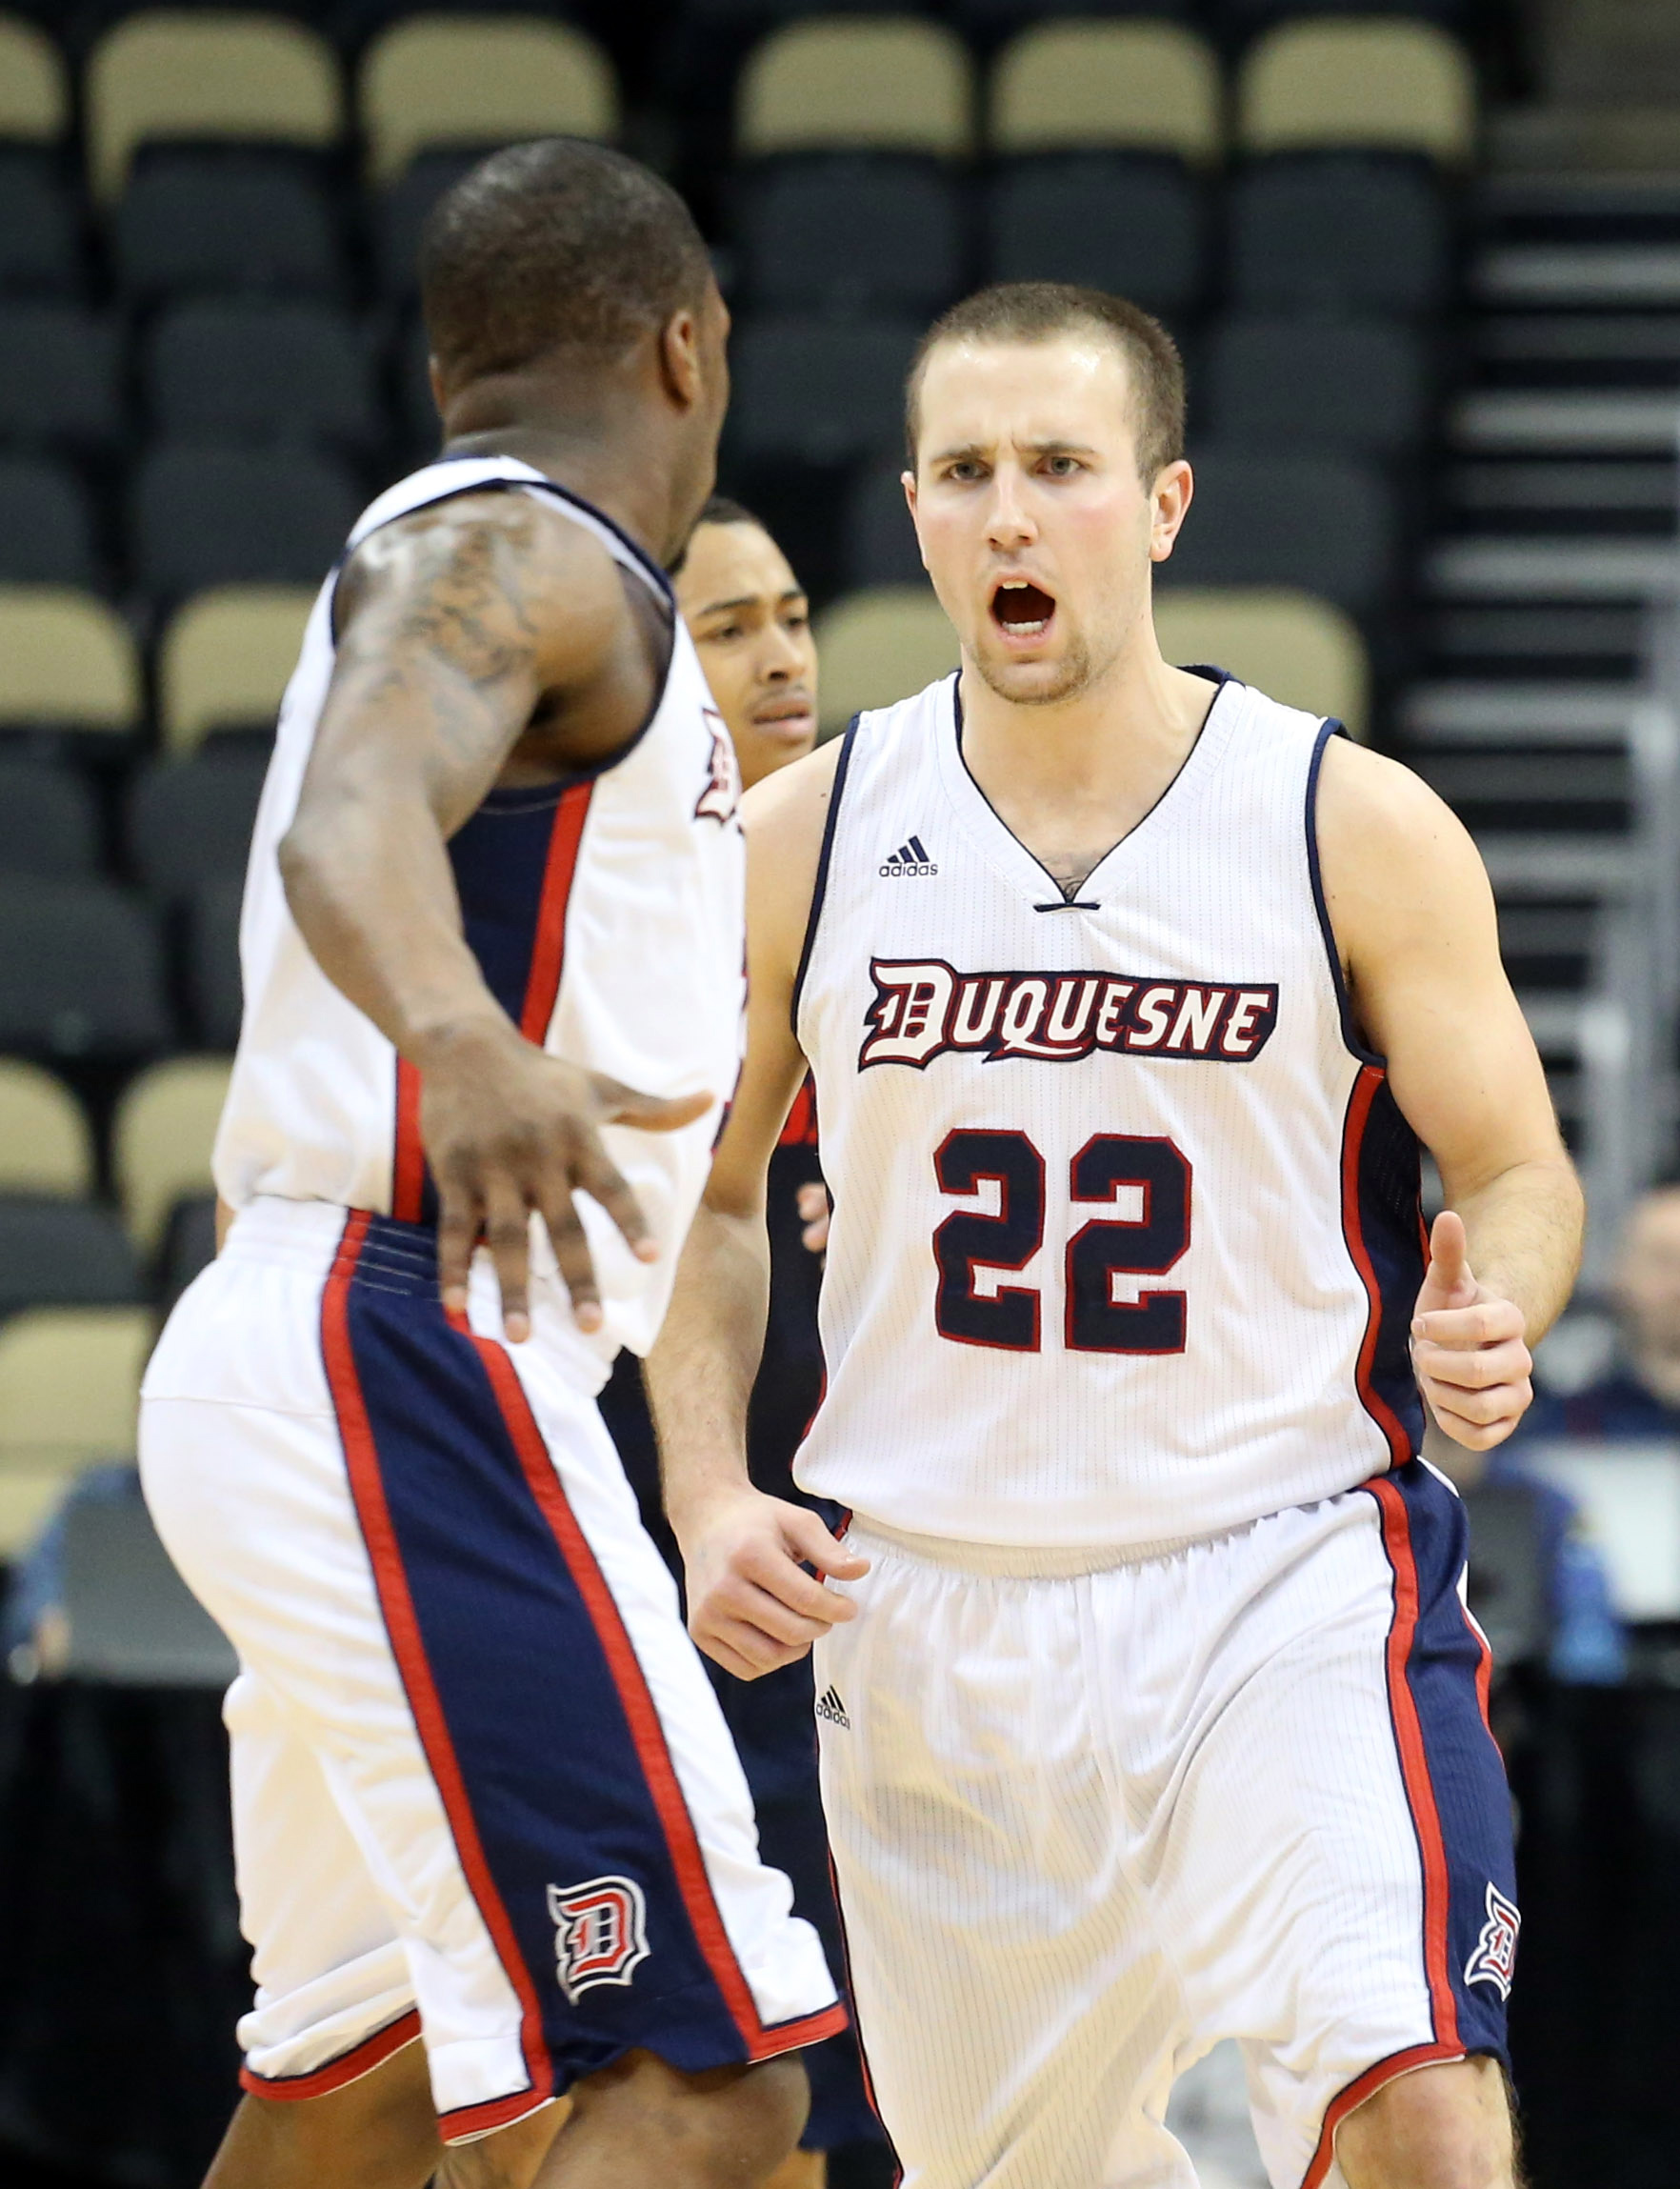 Duquesne's Micah Mason (#22) who scored 19 points in their victory against the Saint Louis Billikens in the Atlantic 10 Conference Tournament on Wednesday, March 11th, 2015